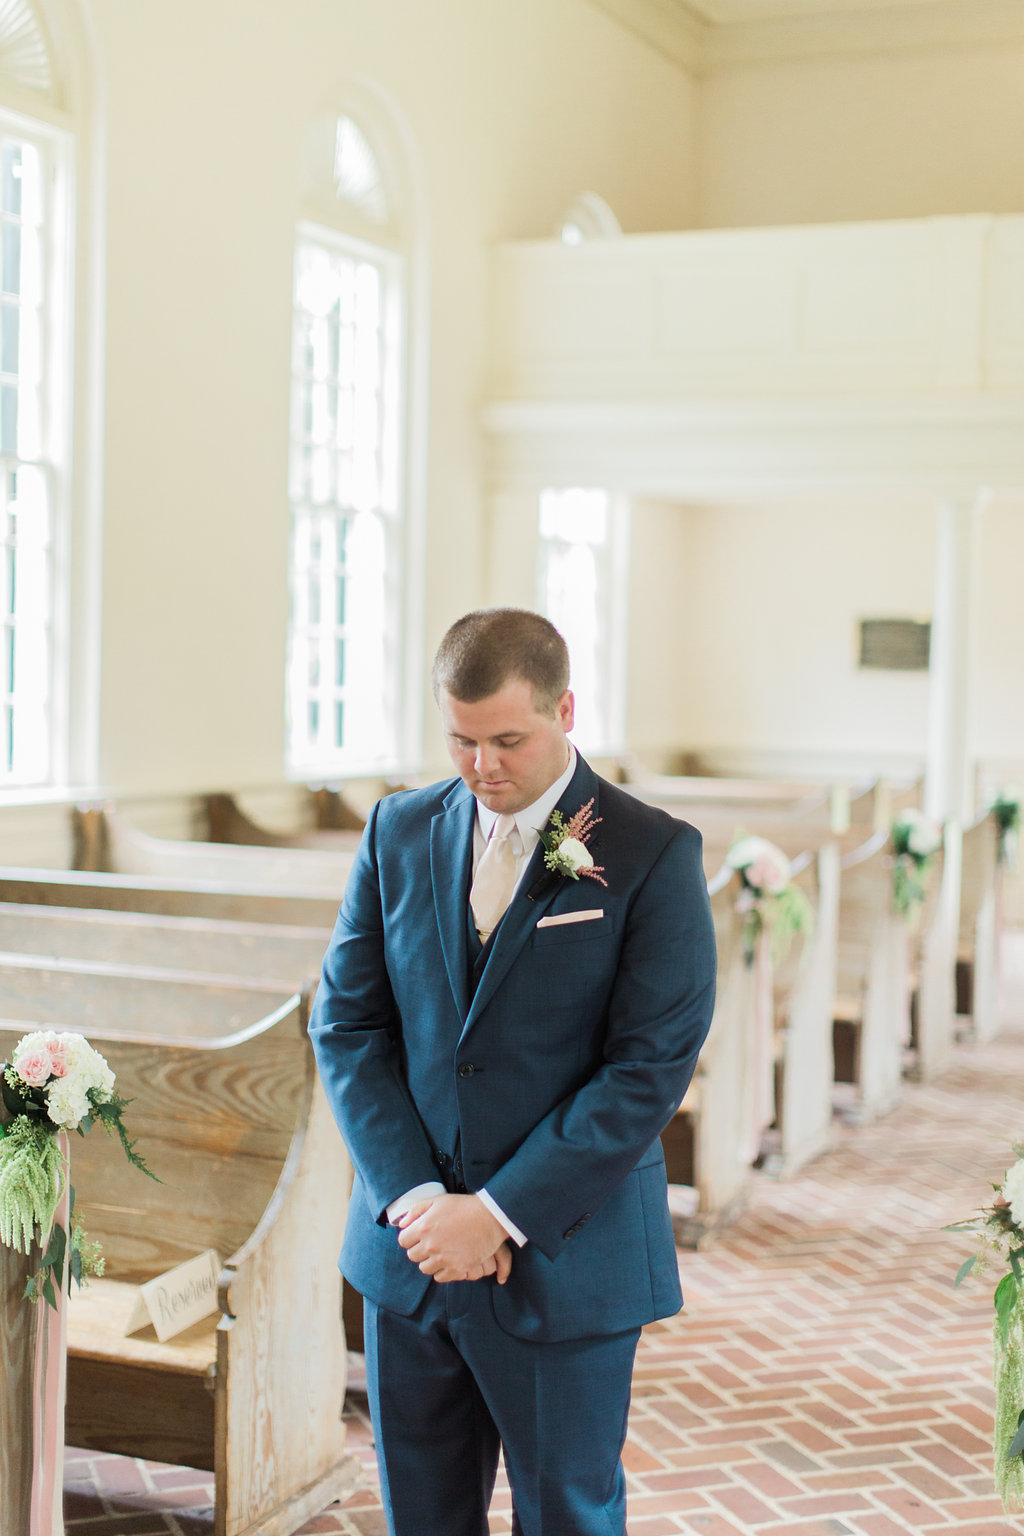 the-happy-bloom-photography-ivory-and-beau-wedding-planning-ivory-and-beau-bridal-boutique-whitfield-chapel-wedding-10-downing-wedding-savannah-wedding-historic-savannah-wedding-savannah-wedding-planner-savannah-weddings-a-to-zinnias-22.jpg